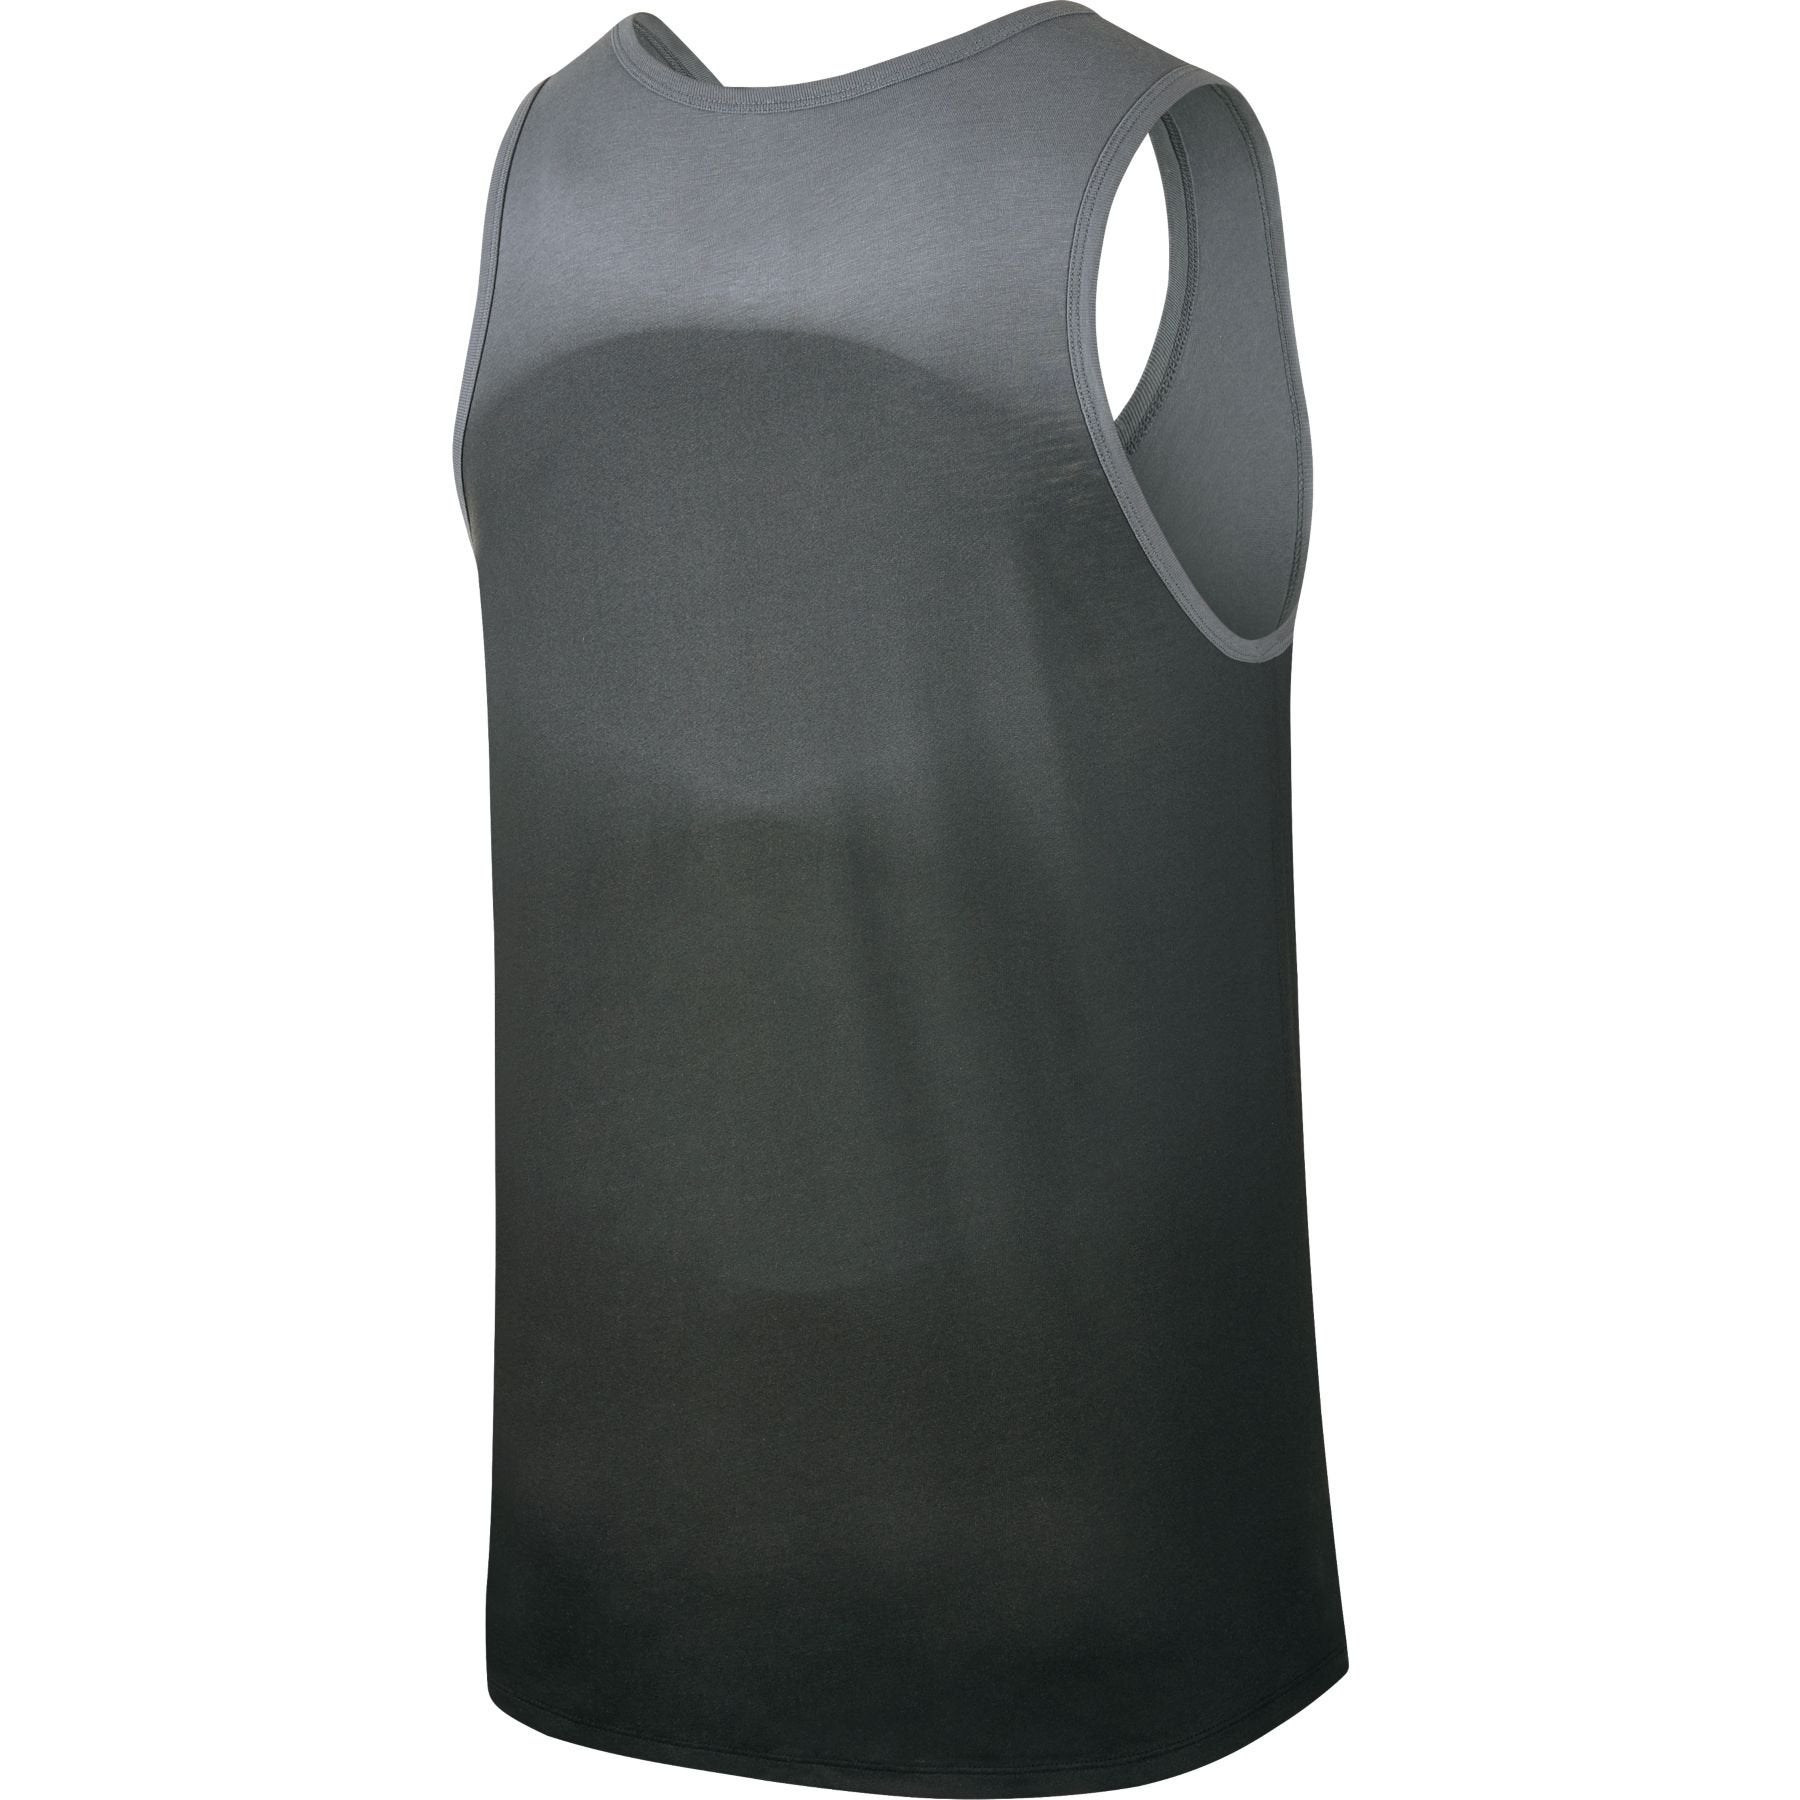 468d6f7db7be9 Shop Nike NEW Gray Mens Size 2XL Athletic Cut Ace Logo Tank Top Shirt -  Free Shipping On Orders Over  45 - Overstock - 21143922